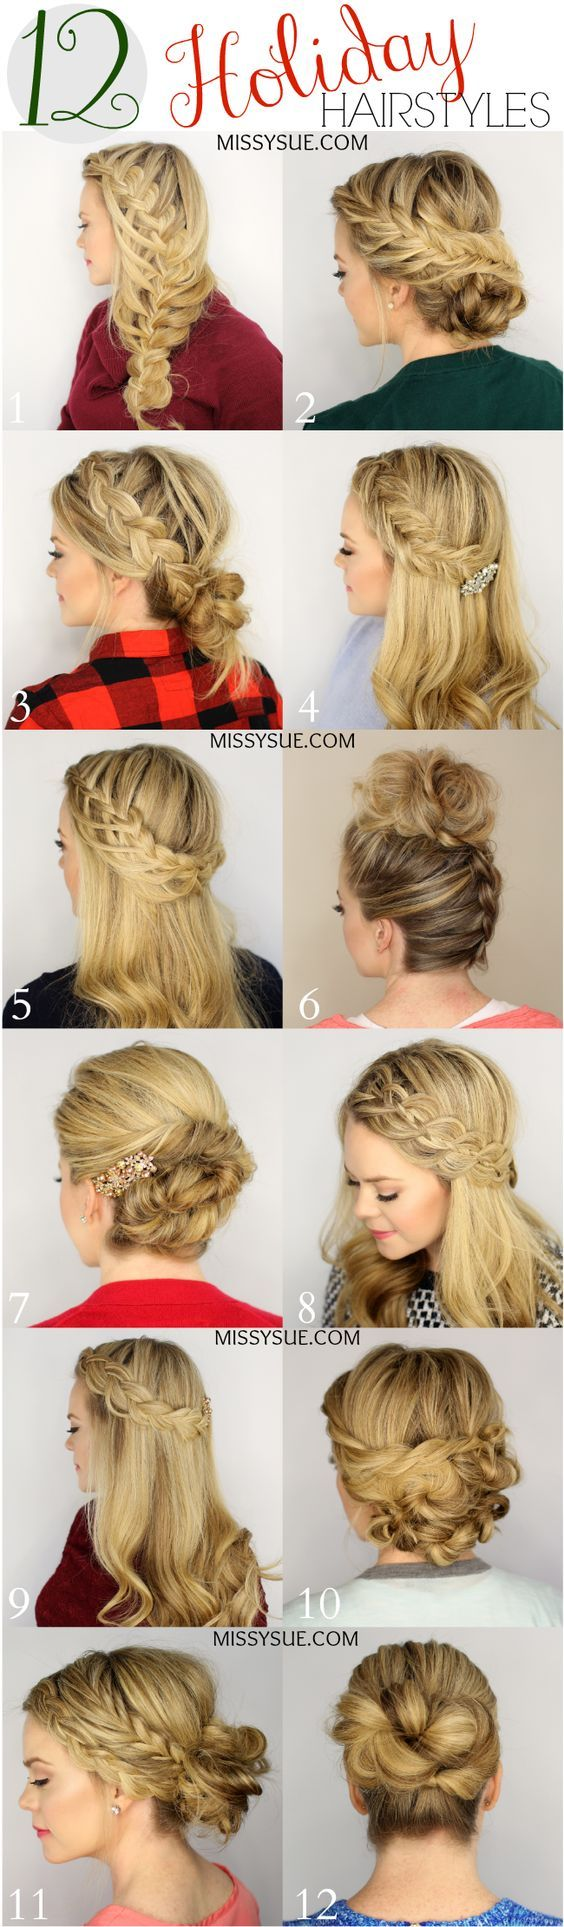 holiday hair styles 17 best ideas about hairstyles on 2336 | e2336c2ee7e5817f279a9dcc304b135a